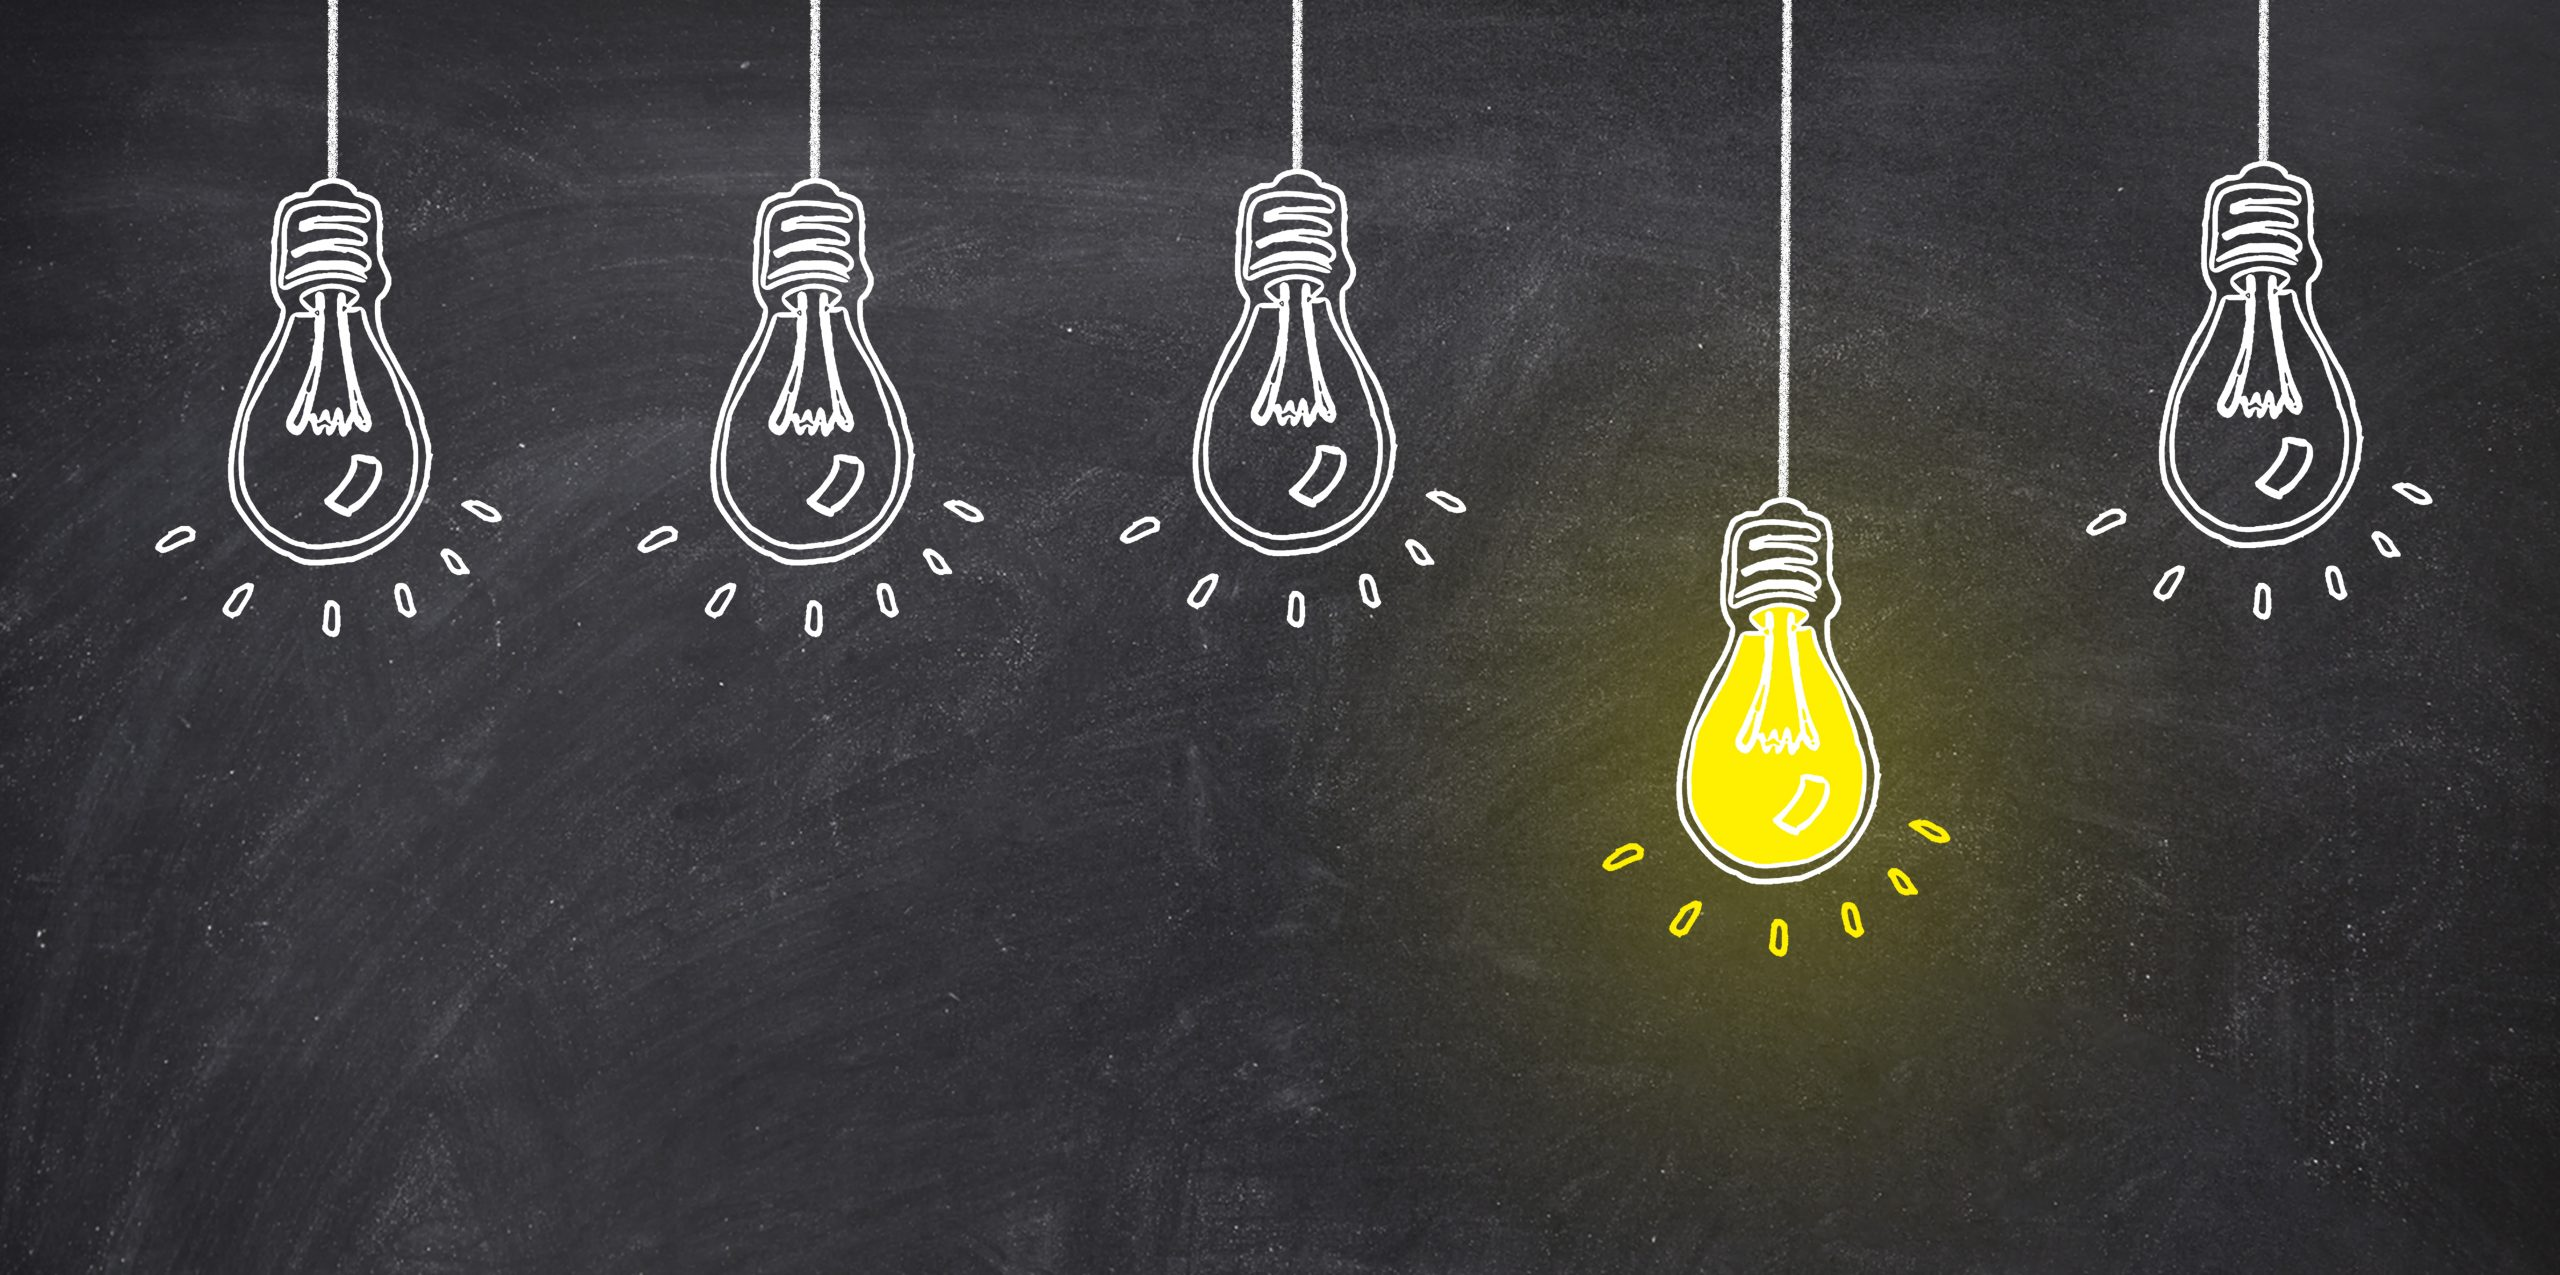 The Top 5 Ways to Tell If an Insight Really Matters